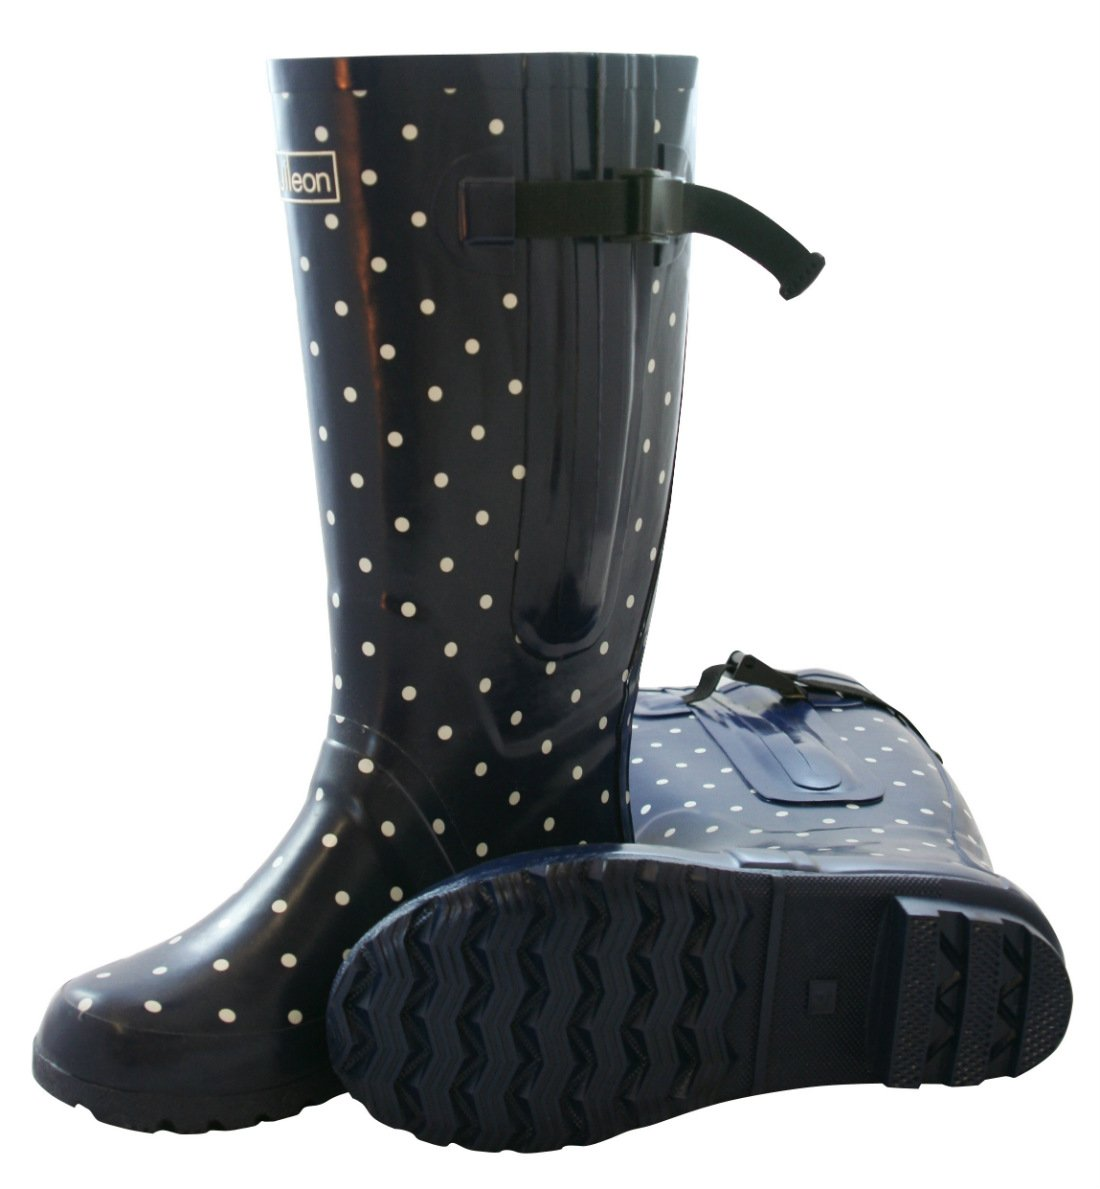 Jileon Extra Wide Calf Rubber Navy Blue Rain Boots for Women-Widest Fit Boots in The US-up to 21 inch Calves-Wide in The Foot and Ankle-Durable Boots for All Weathers- 11 (XW) by Jileon (Image #3)